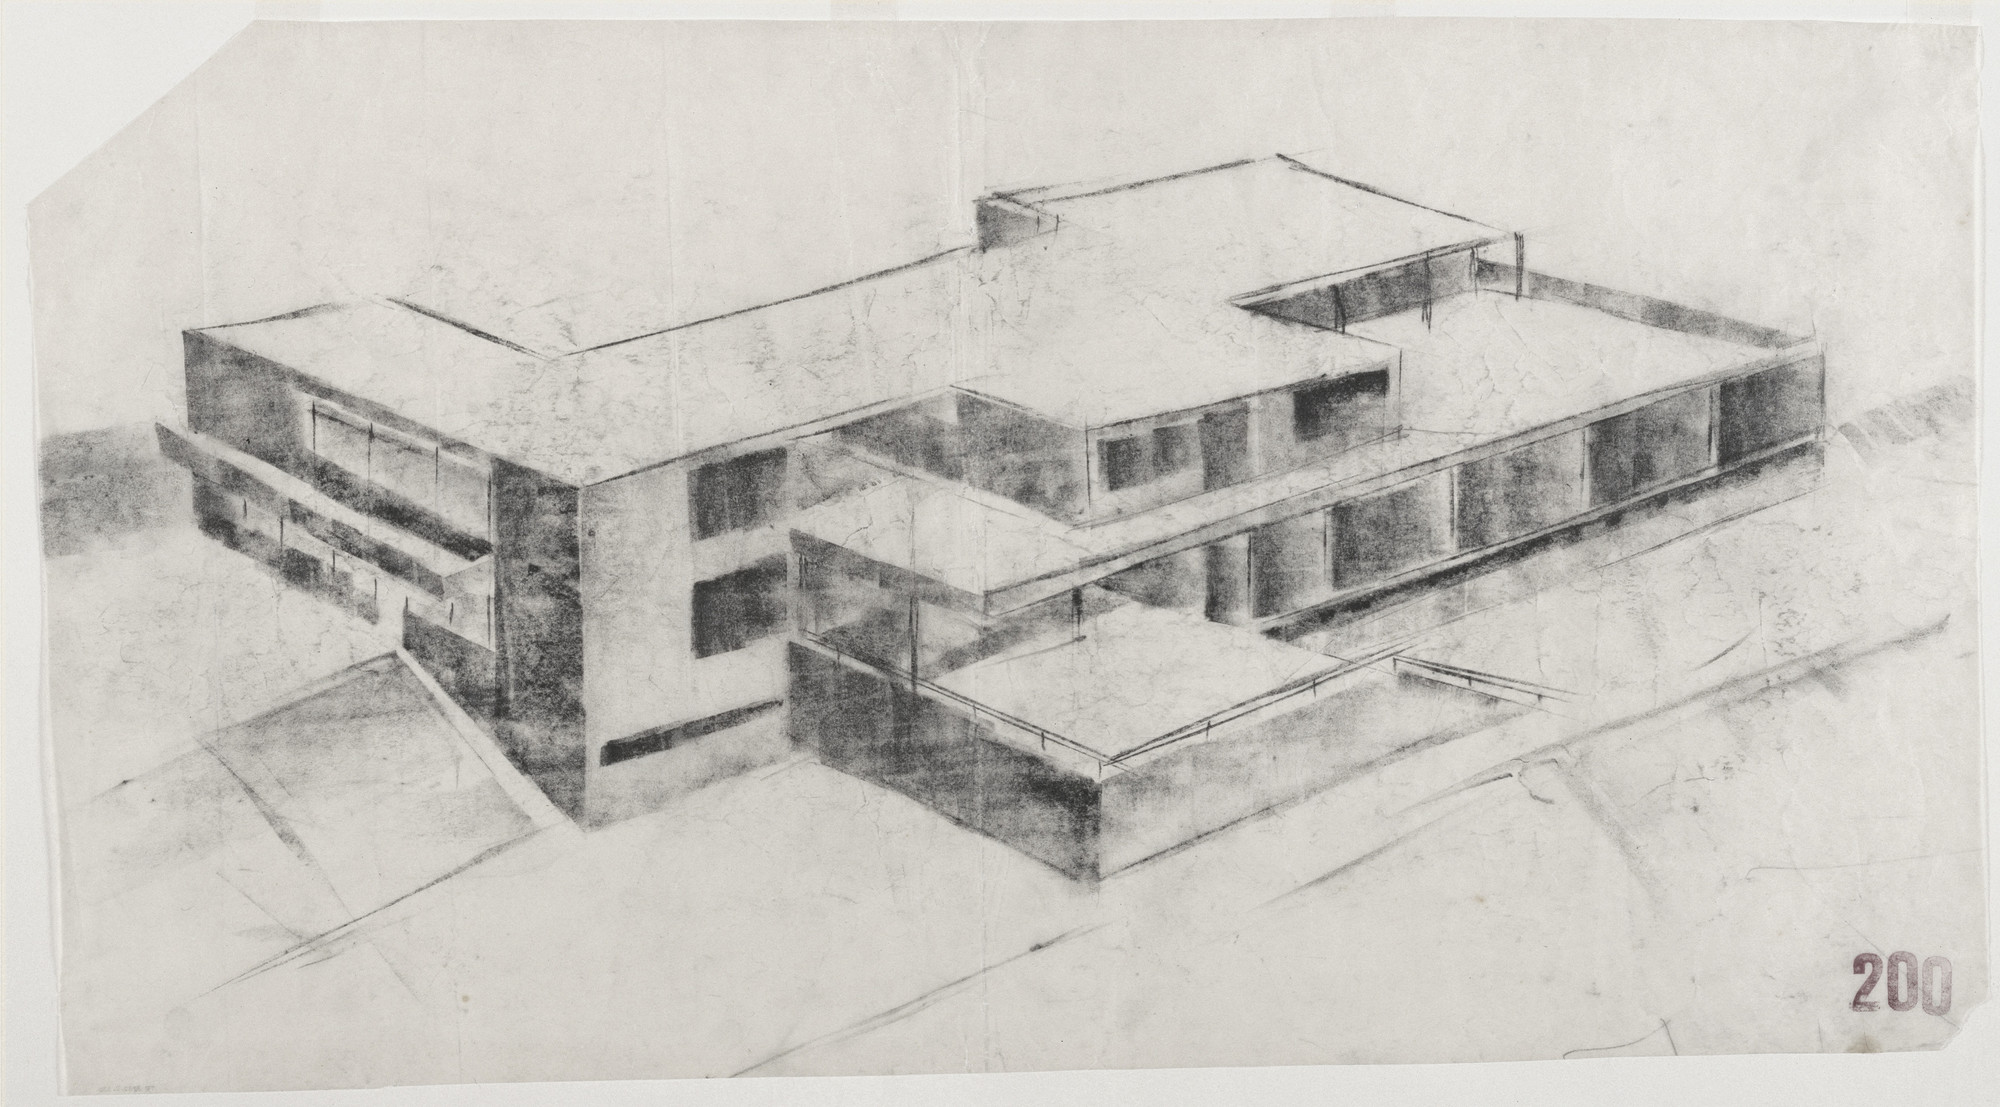 Ludwig Mies van der Rohe. Tugendhat House, Brno, Czech Republic (Aerial perspective from southwest). 1928–1930